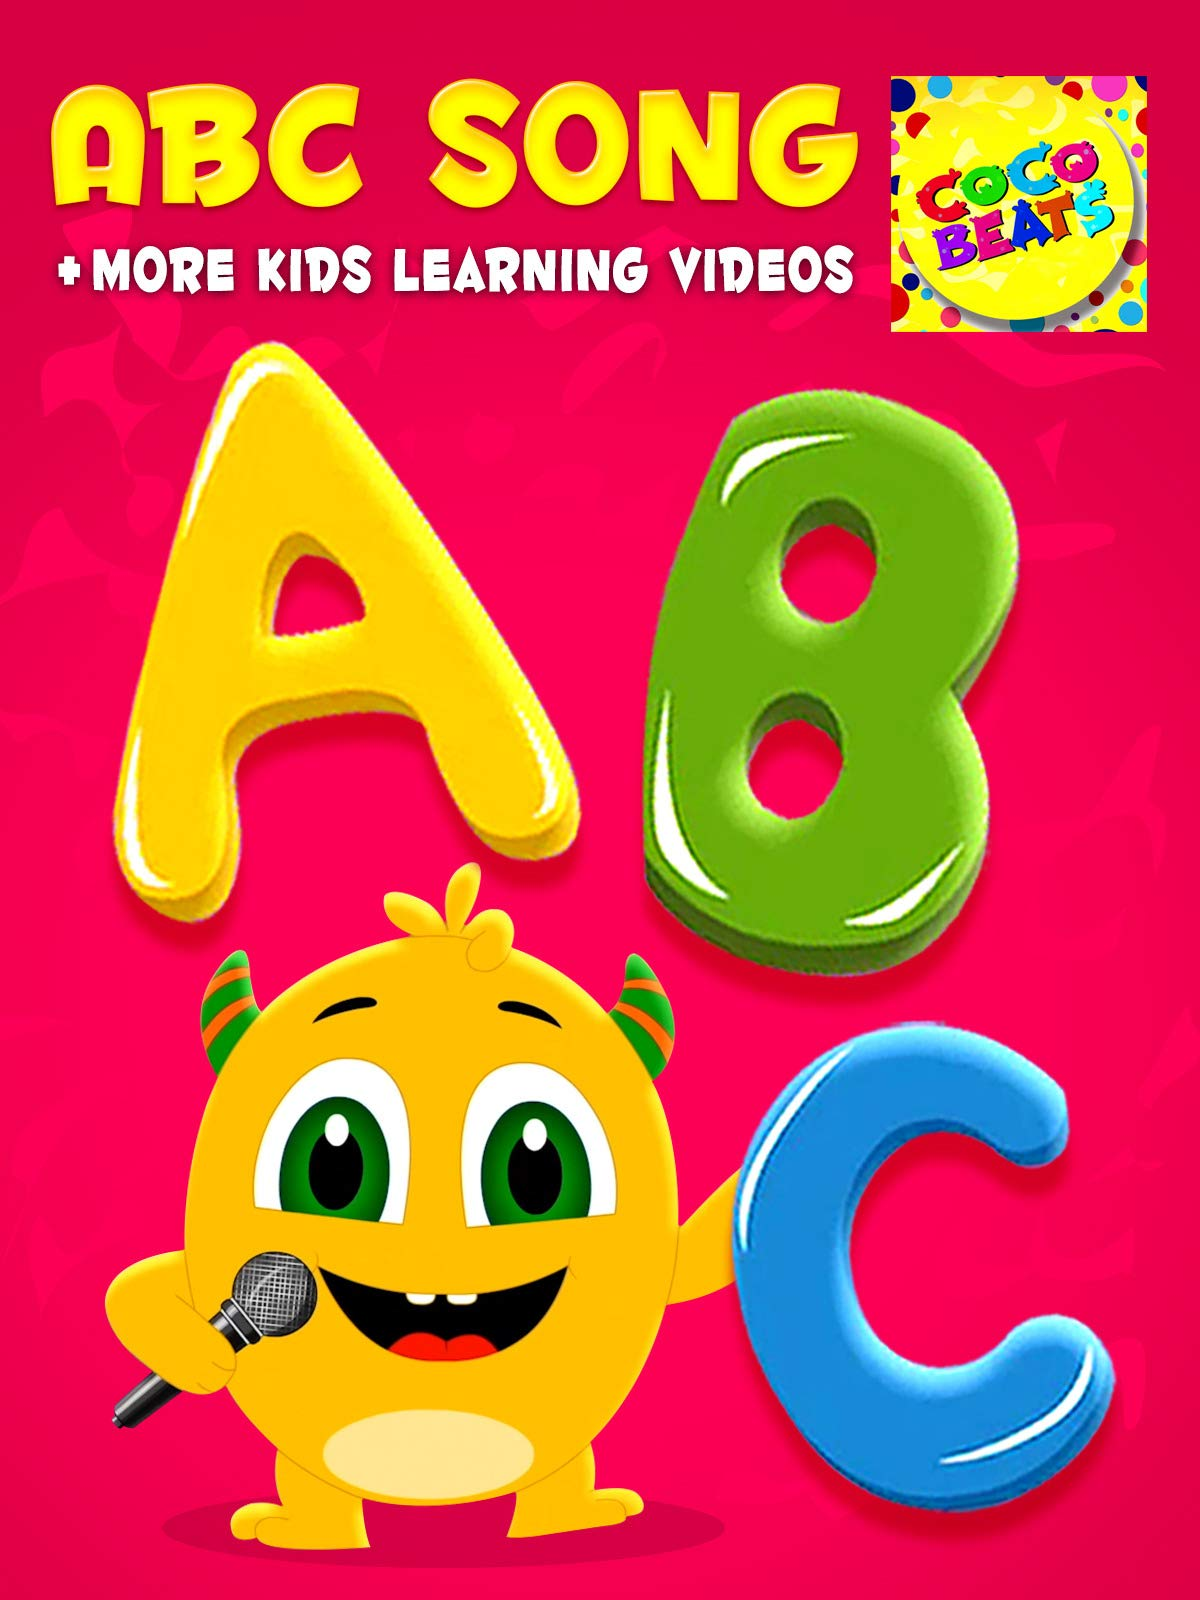 ABC Song + More kids Learning Videos - Coco Beats